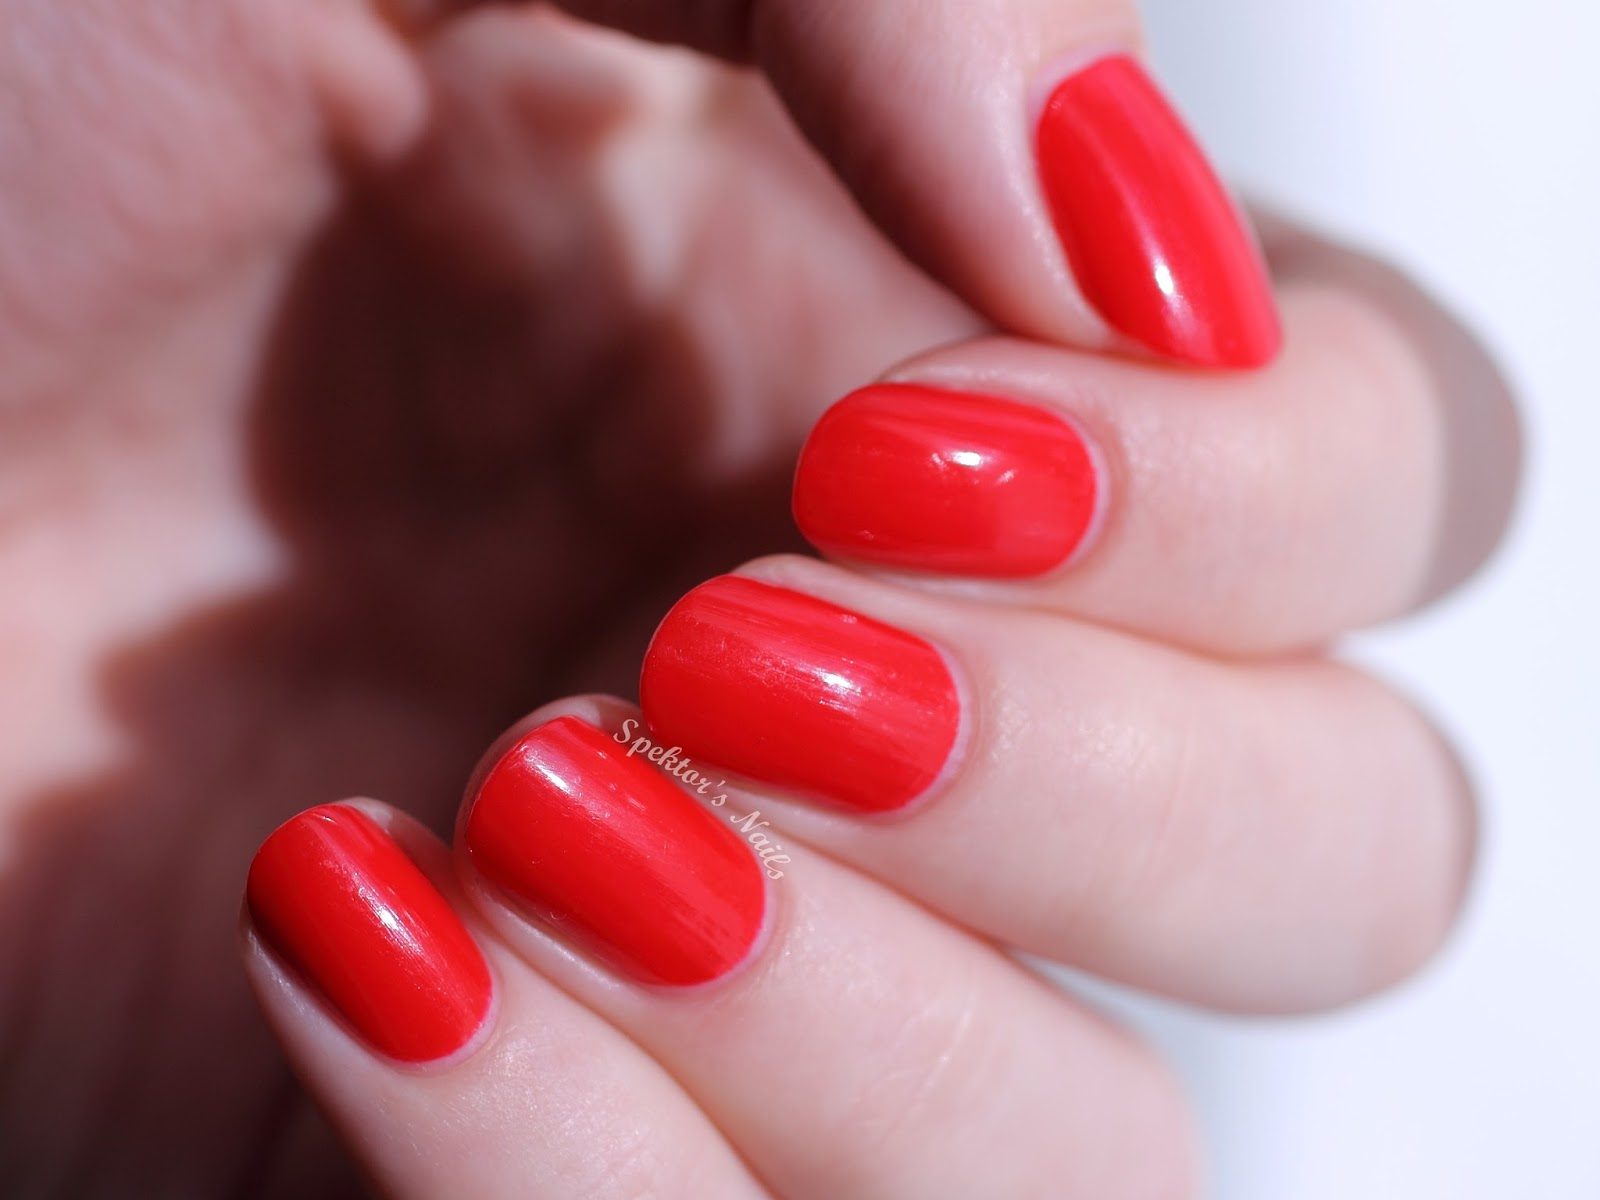 Sally Hansen Miracle Gel Review